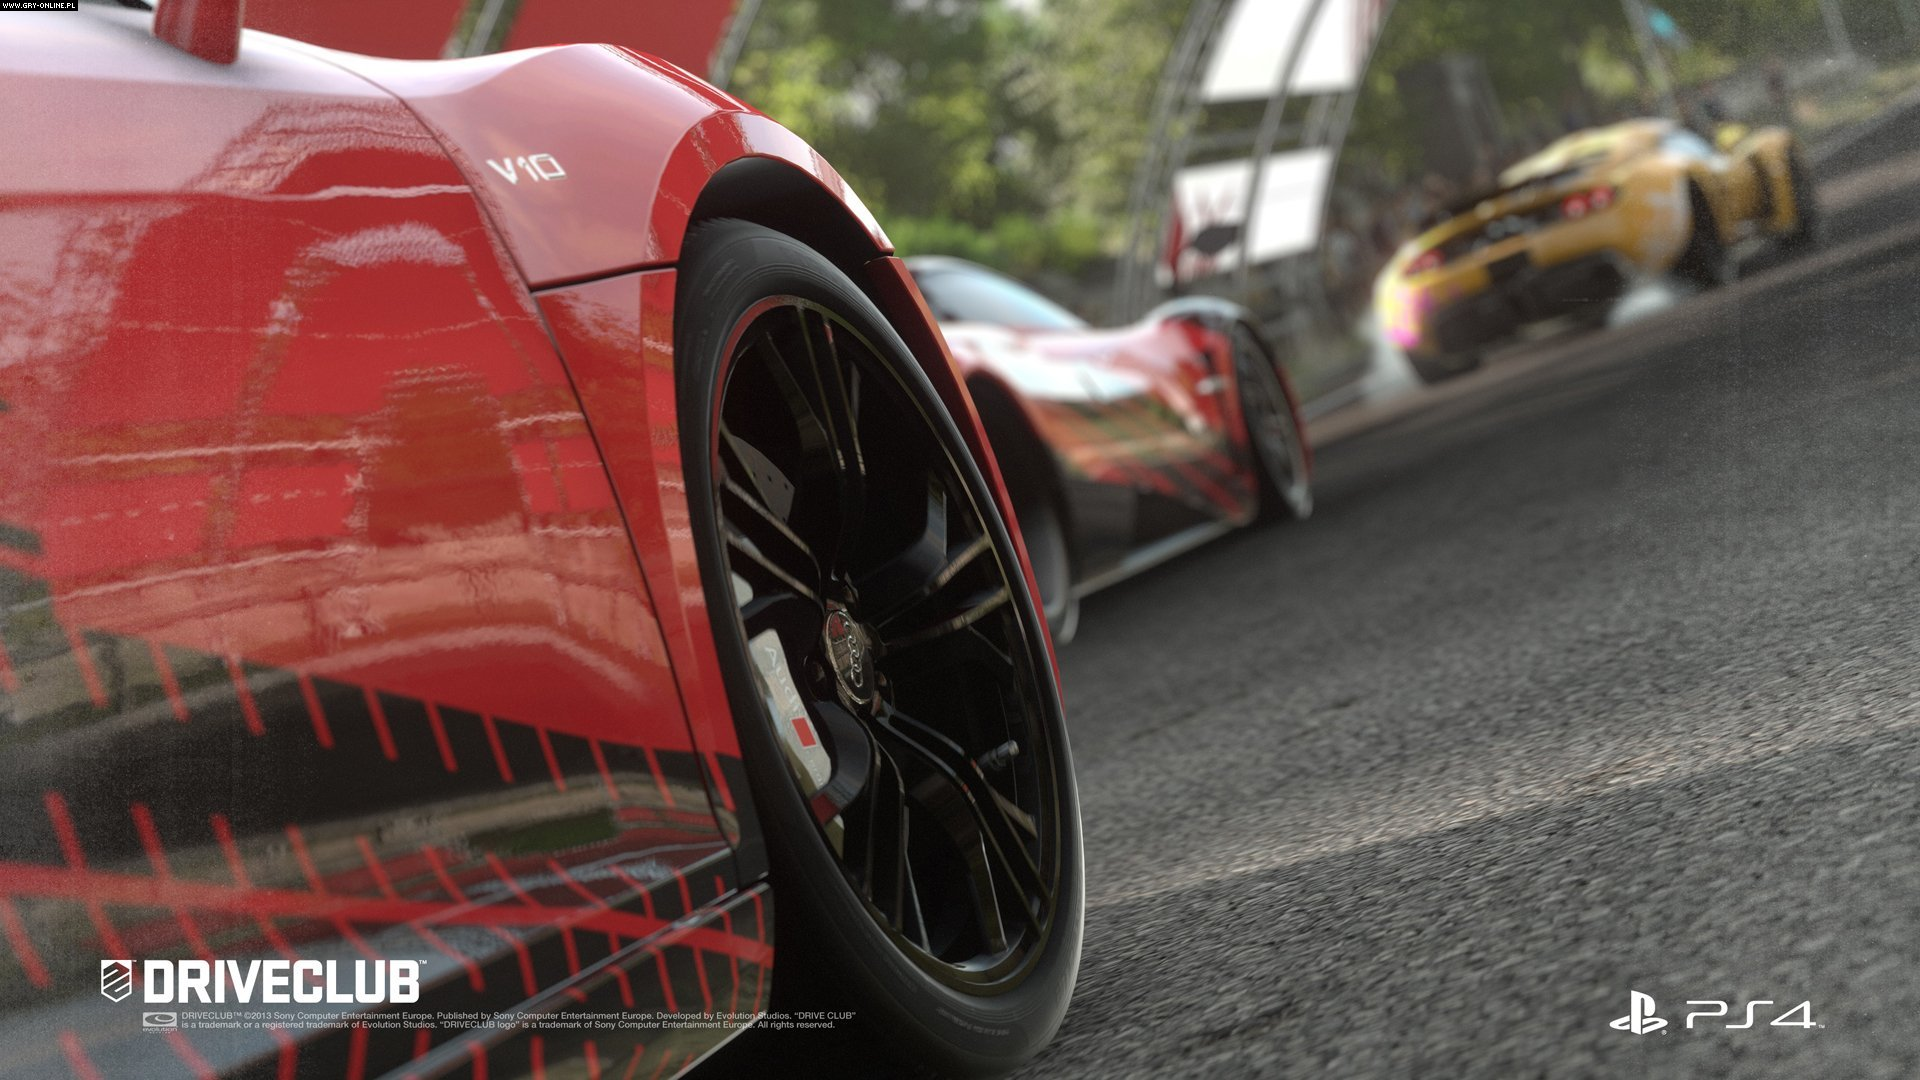 DriveClub PS4 Gry Screen 109/119, Evolution Studios, Sony Interactive Entertainment